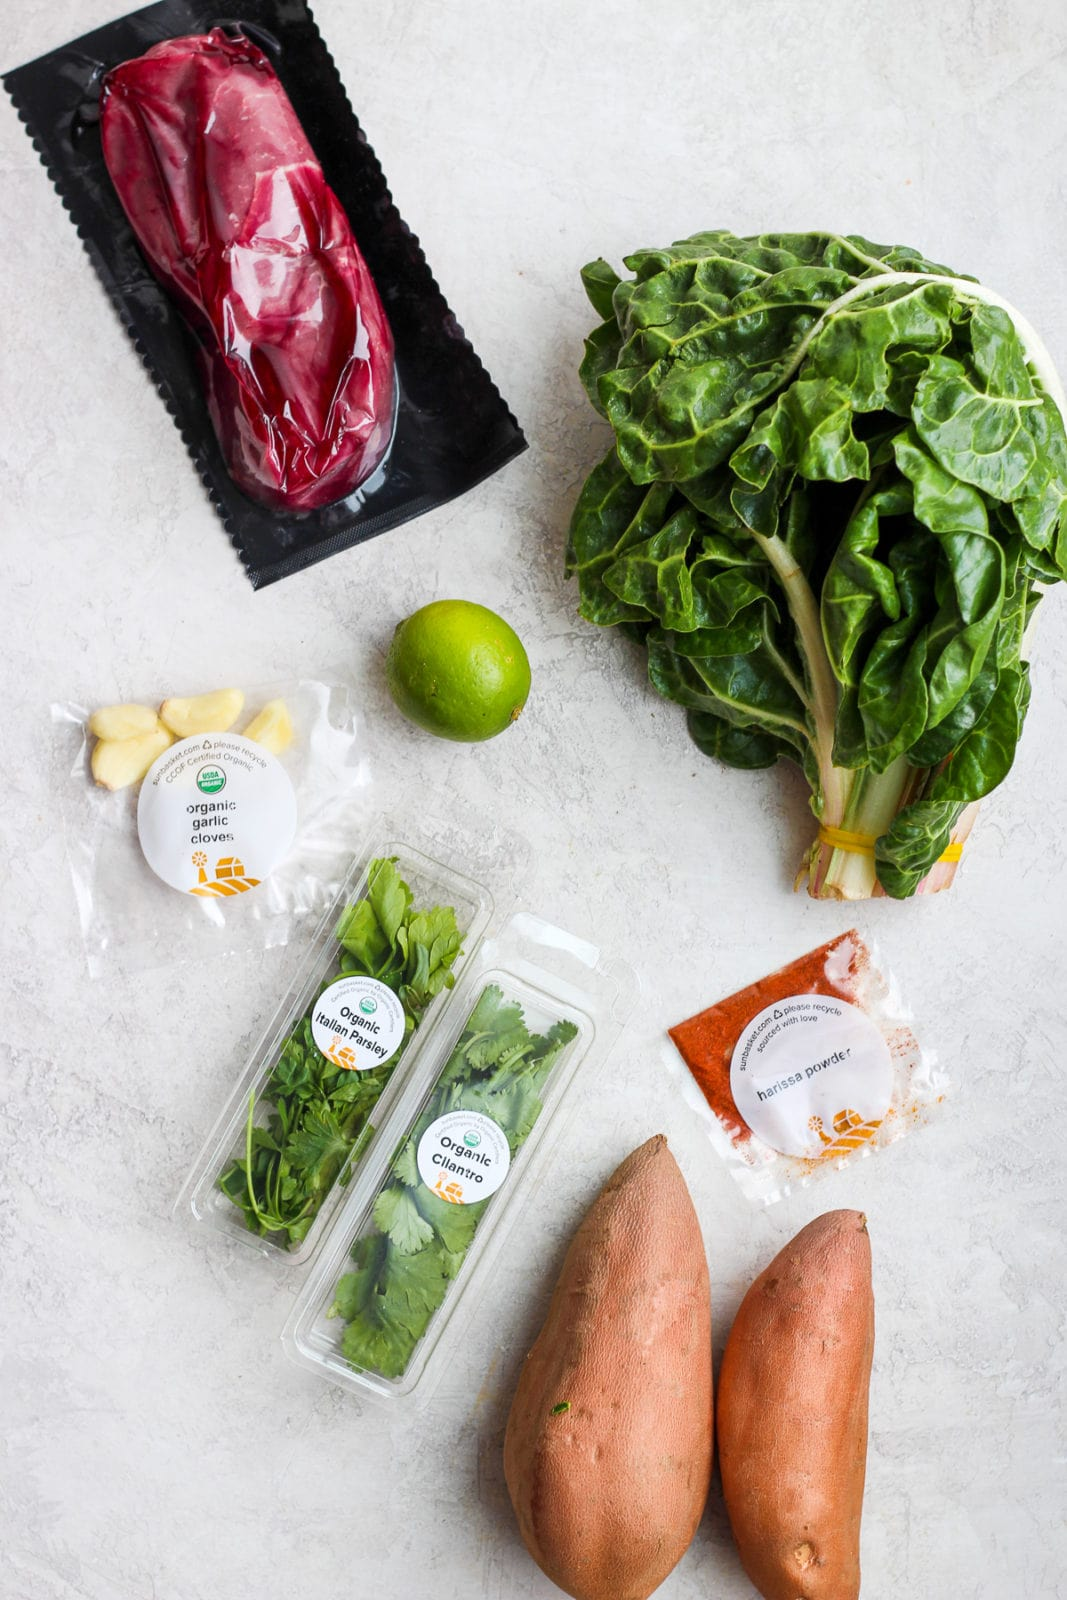 Sun Basket Meal Delivery Service Review - my honest opinion on this healthy, organic and paleo-friendly meal-service delivery! #mealdelivery #organic #whole30meals #paleomeals #glutenfreemeals #glutenfree